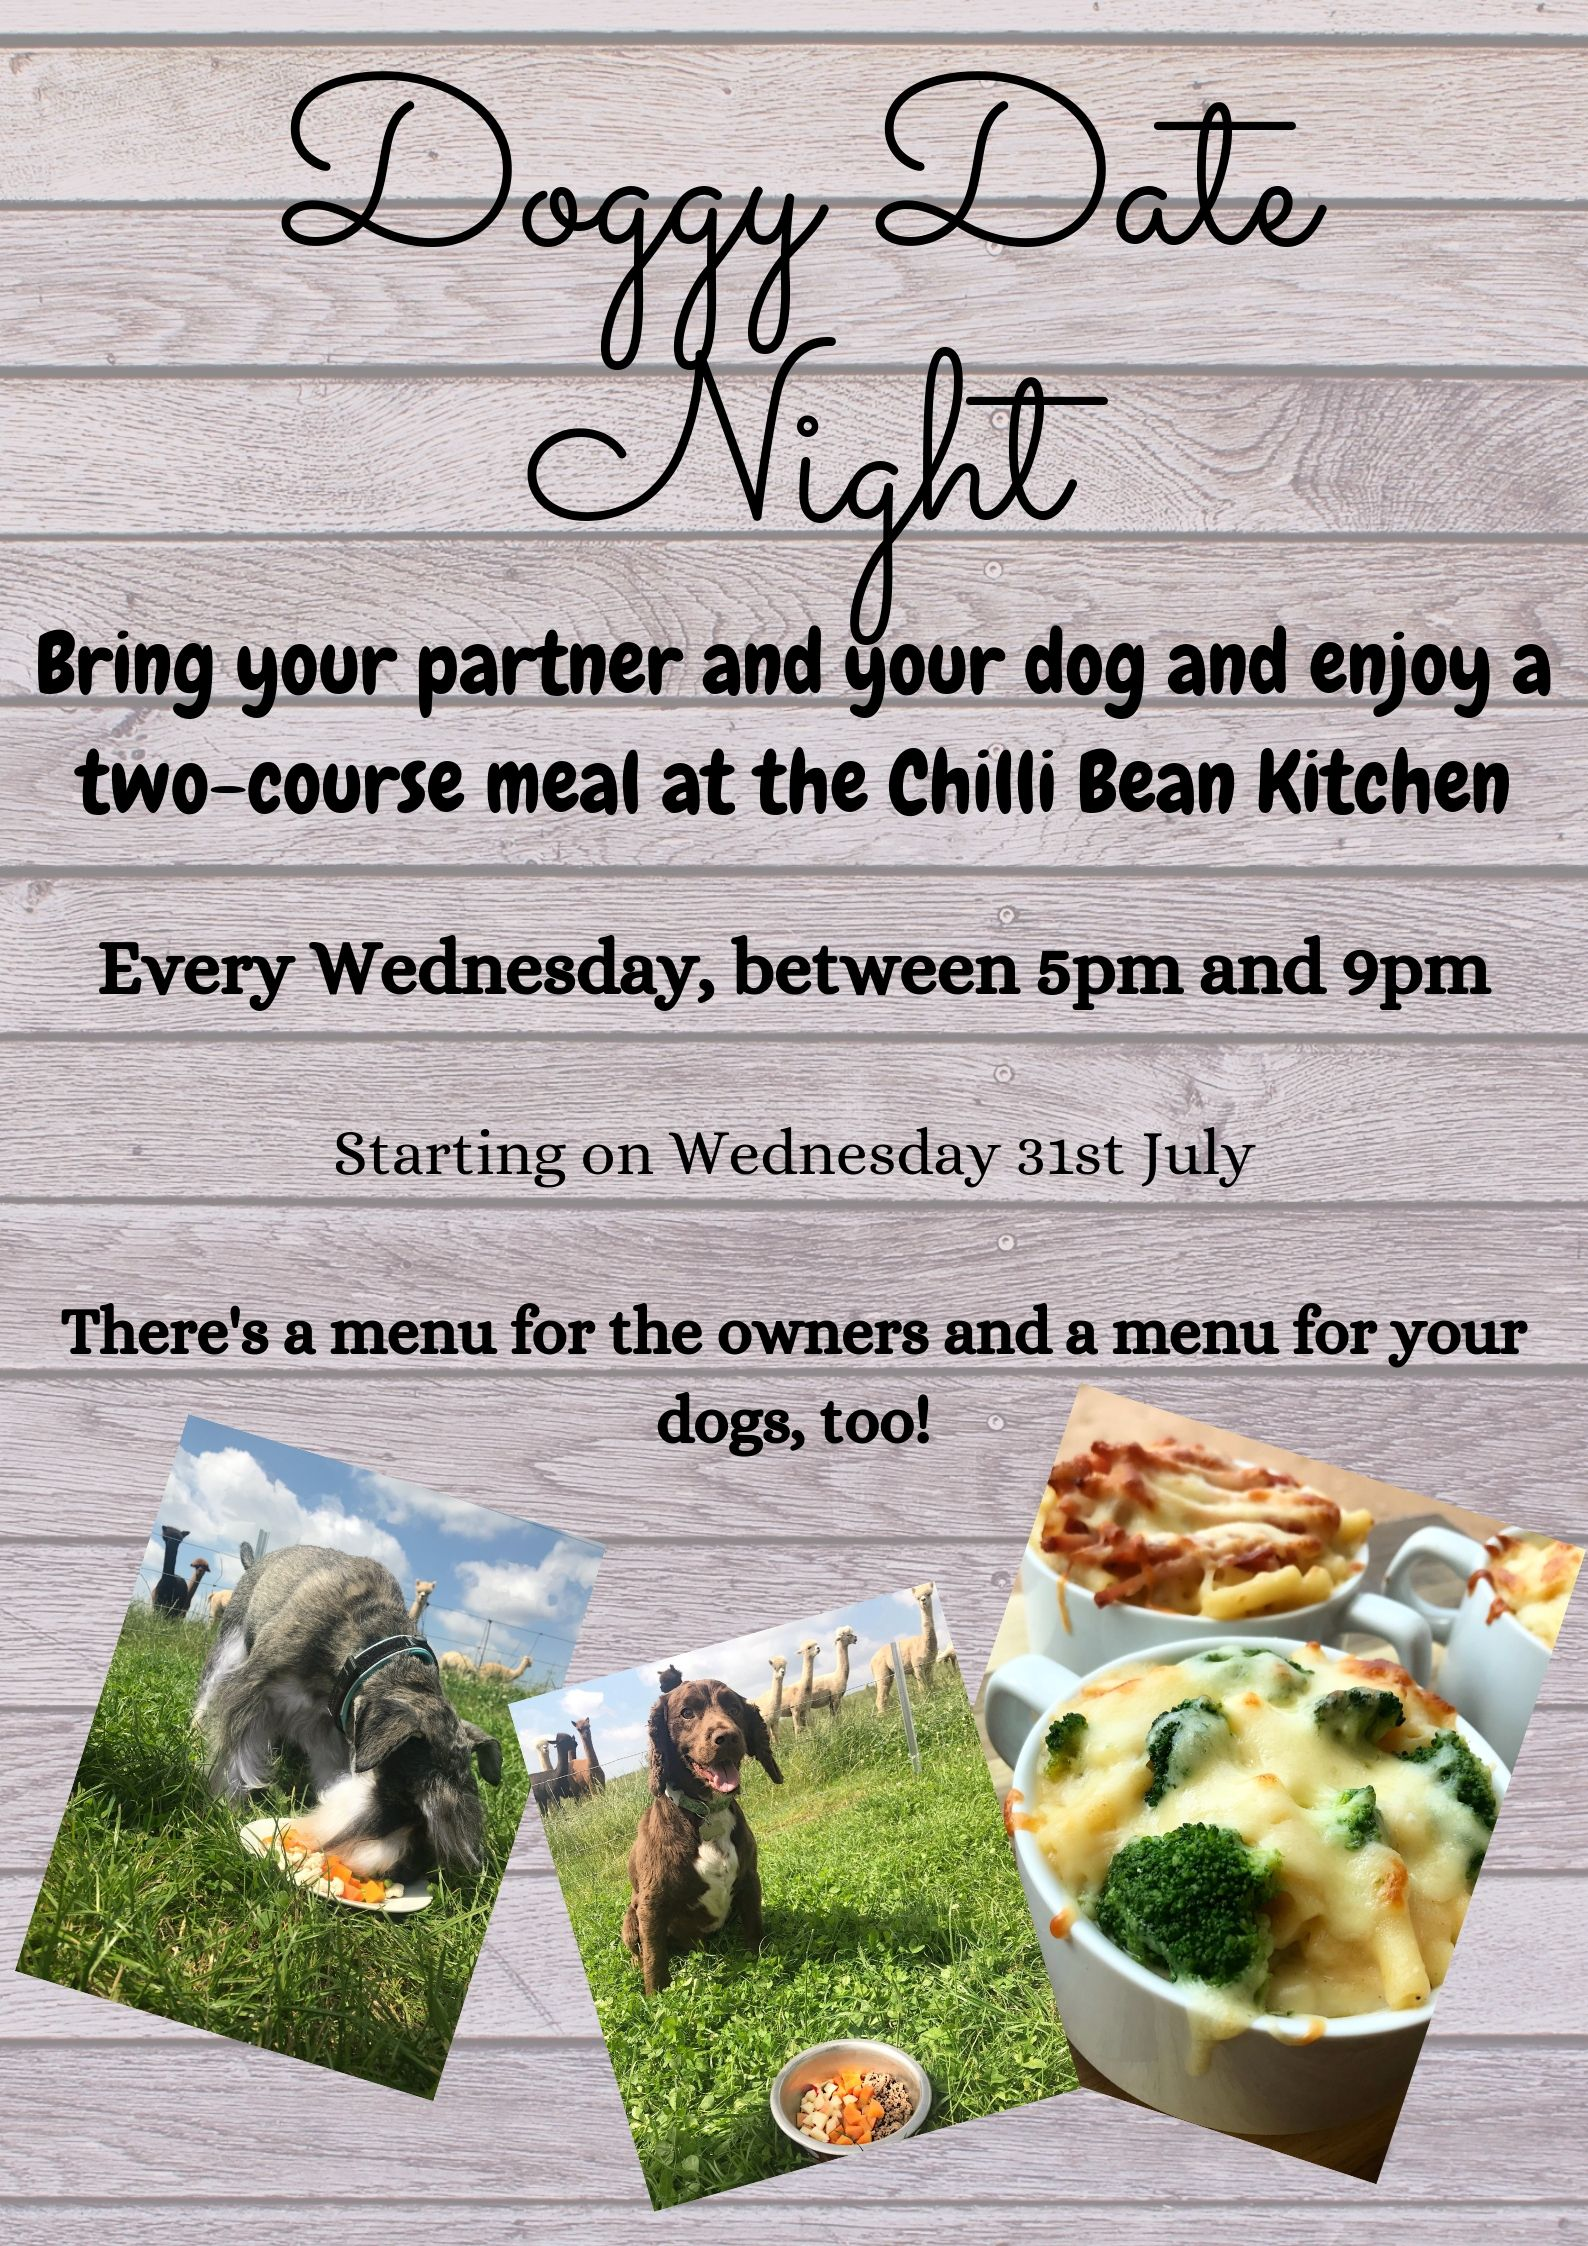 Doggy Date Night - Newsletter and Poster.jpg